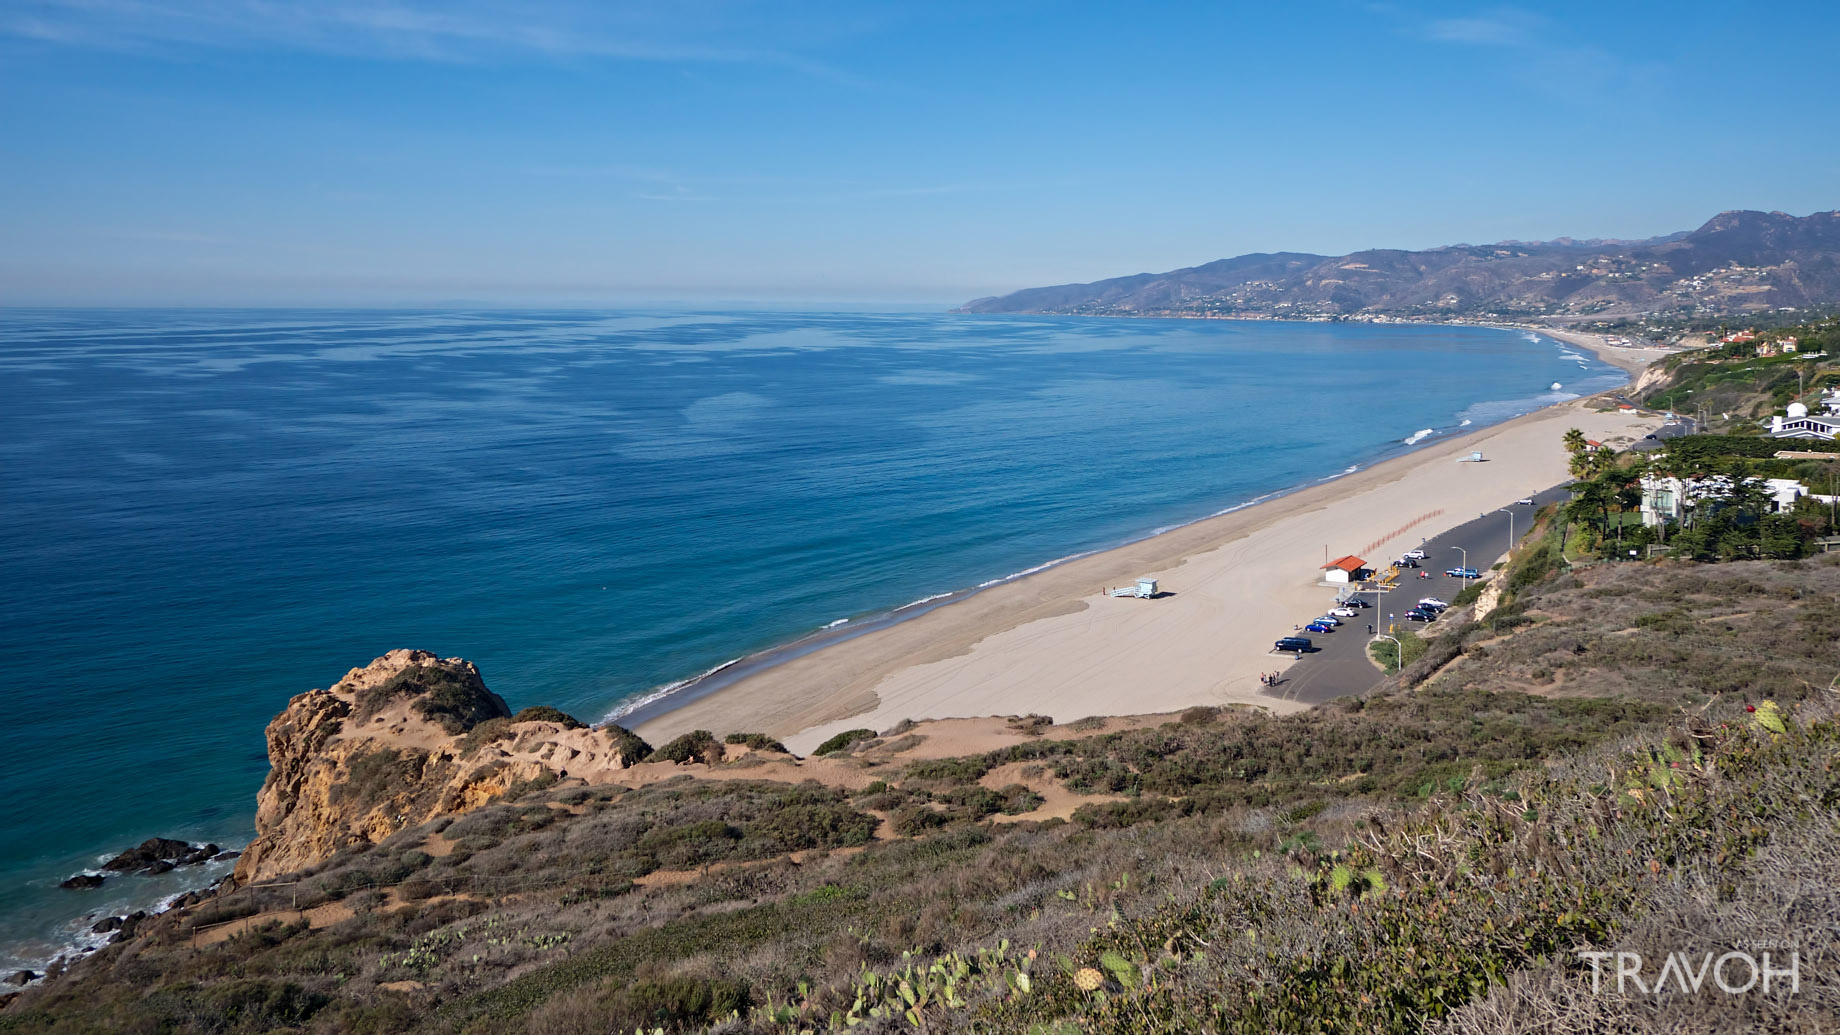 Point Dume State Beach - Cliffside Drive